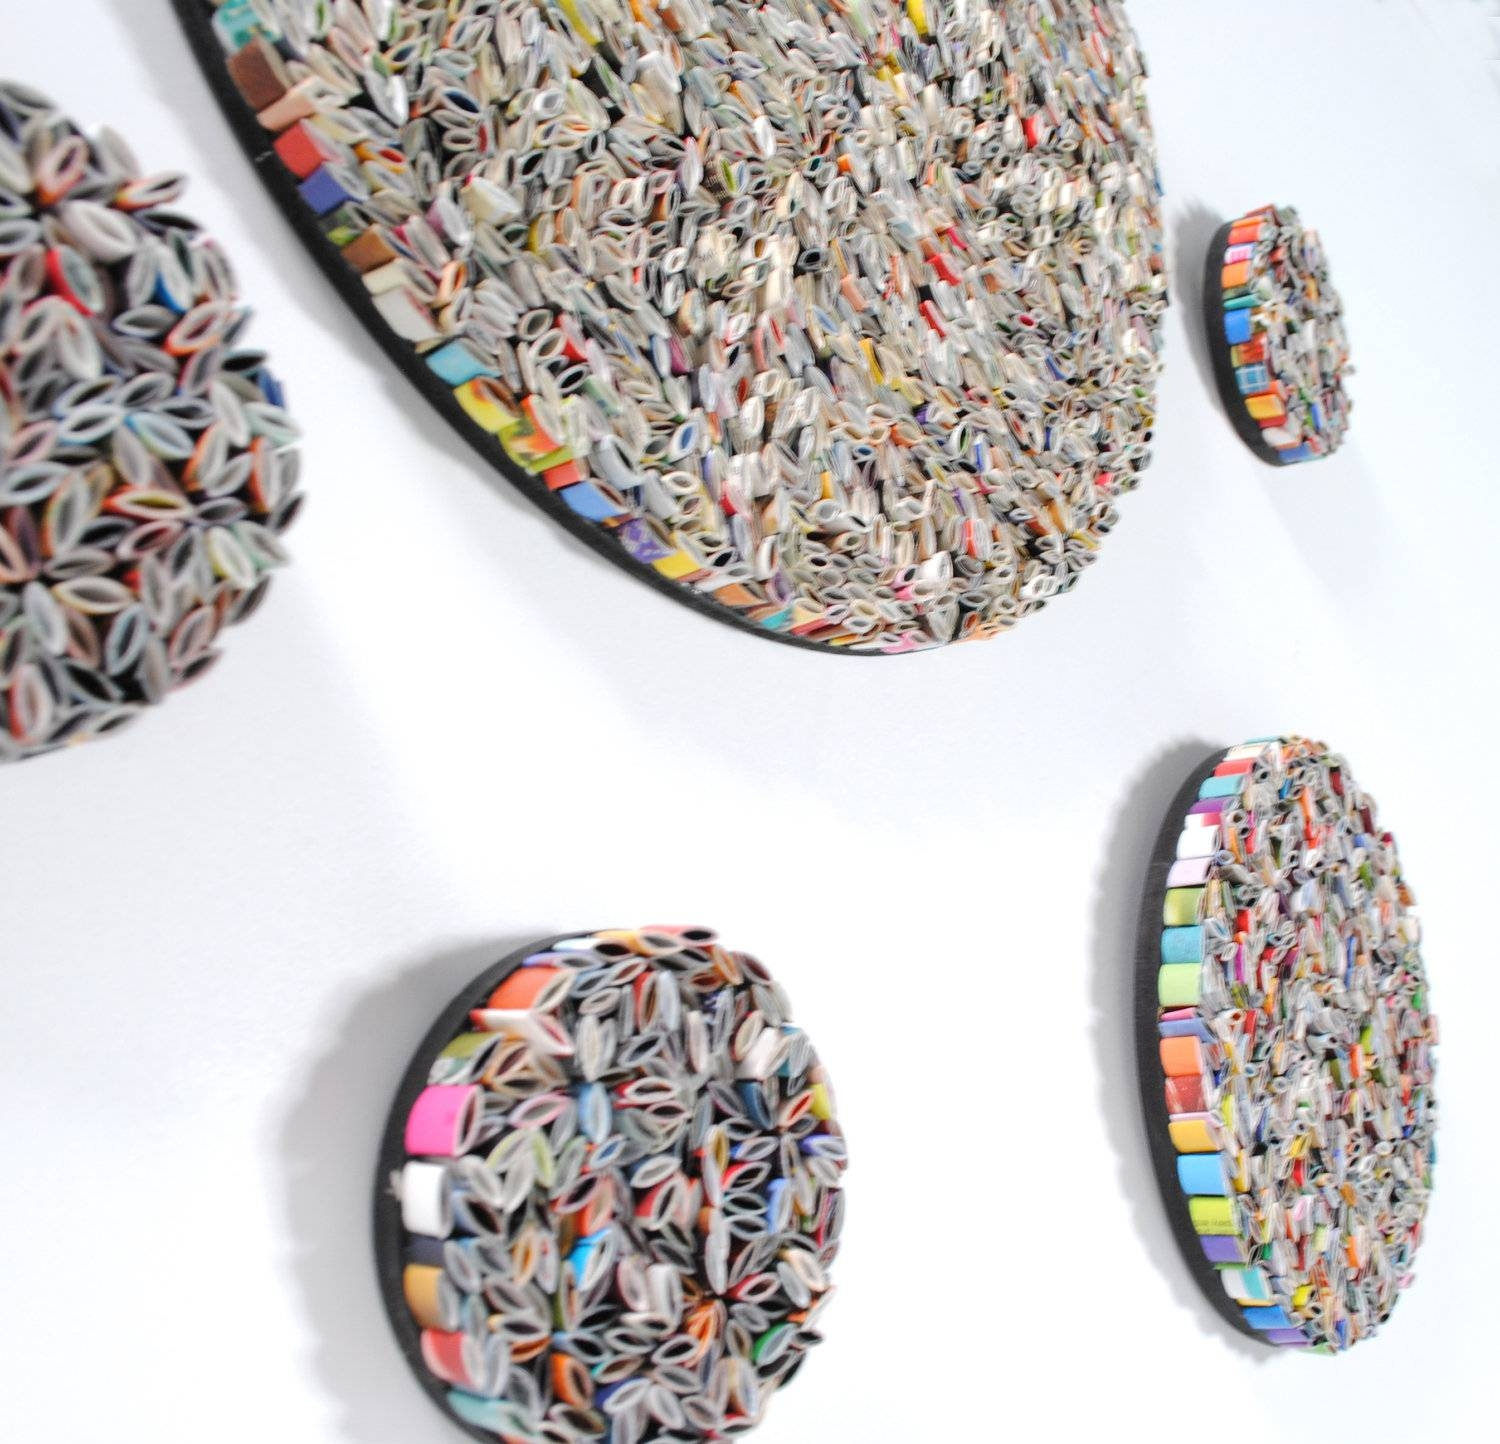 Set Of 5 Round Wall Art Made From Recycled Magazines, Colorful Inside Most Current Recycled Wall Art (Gallery 5 of 30)